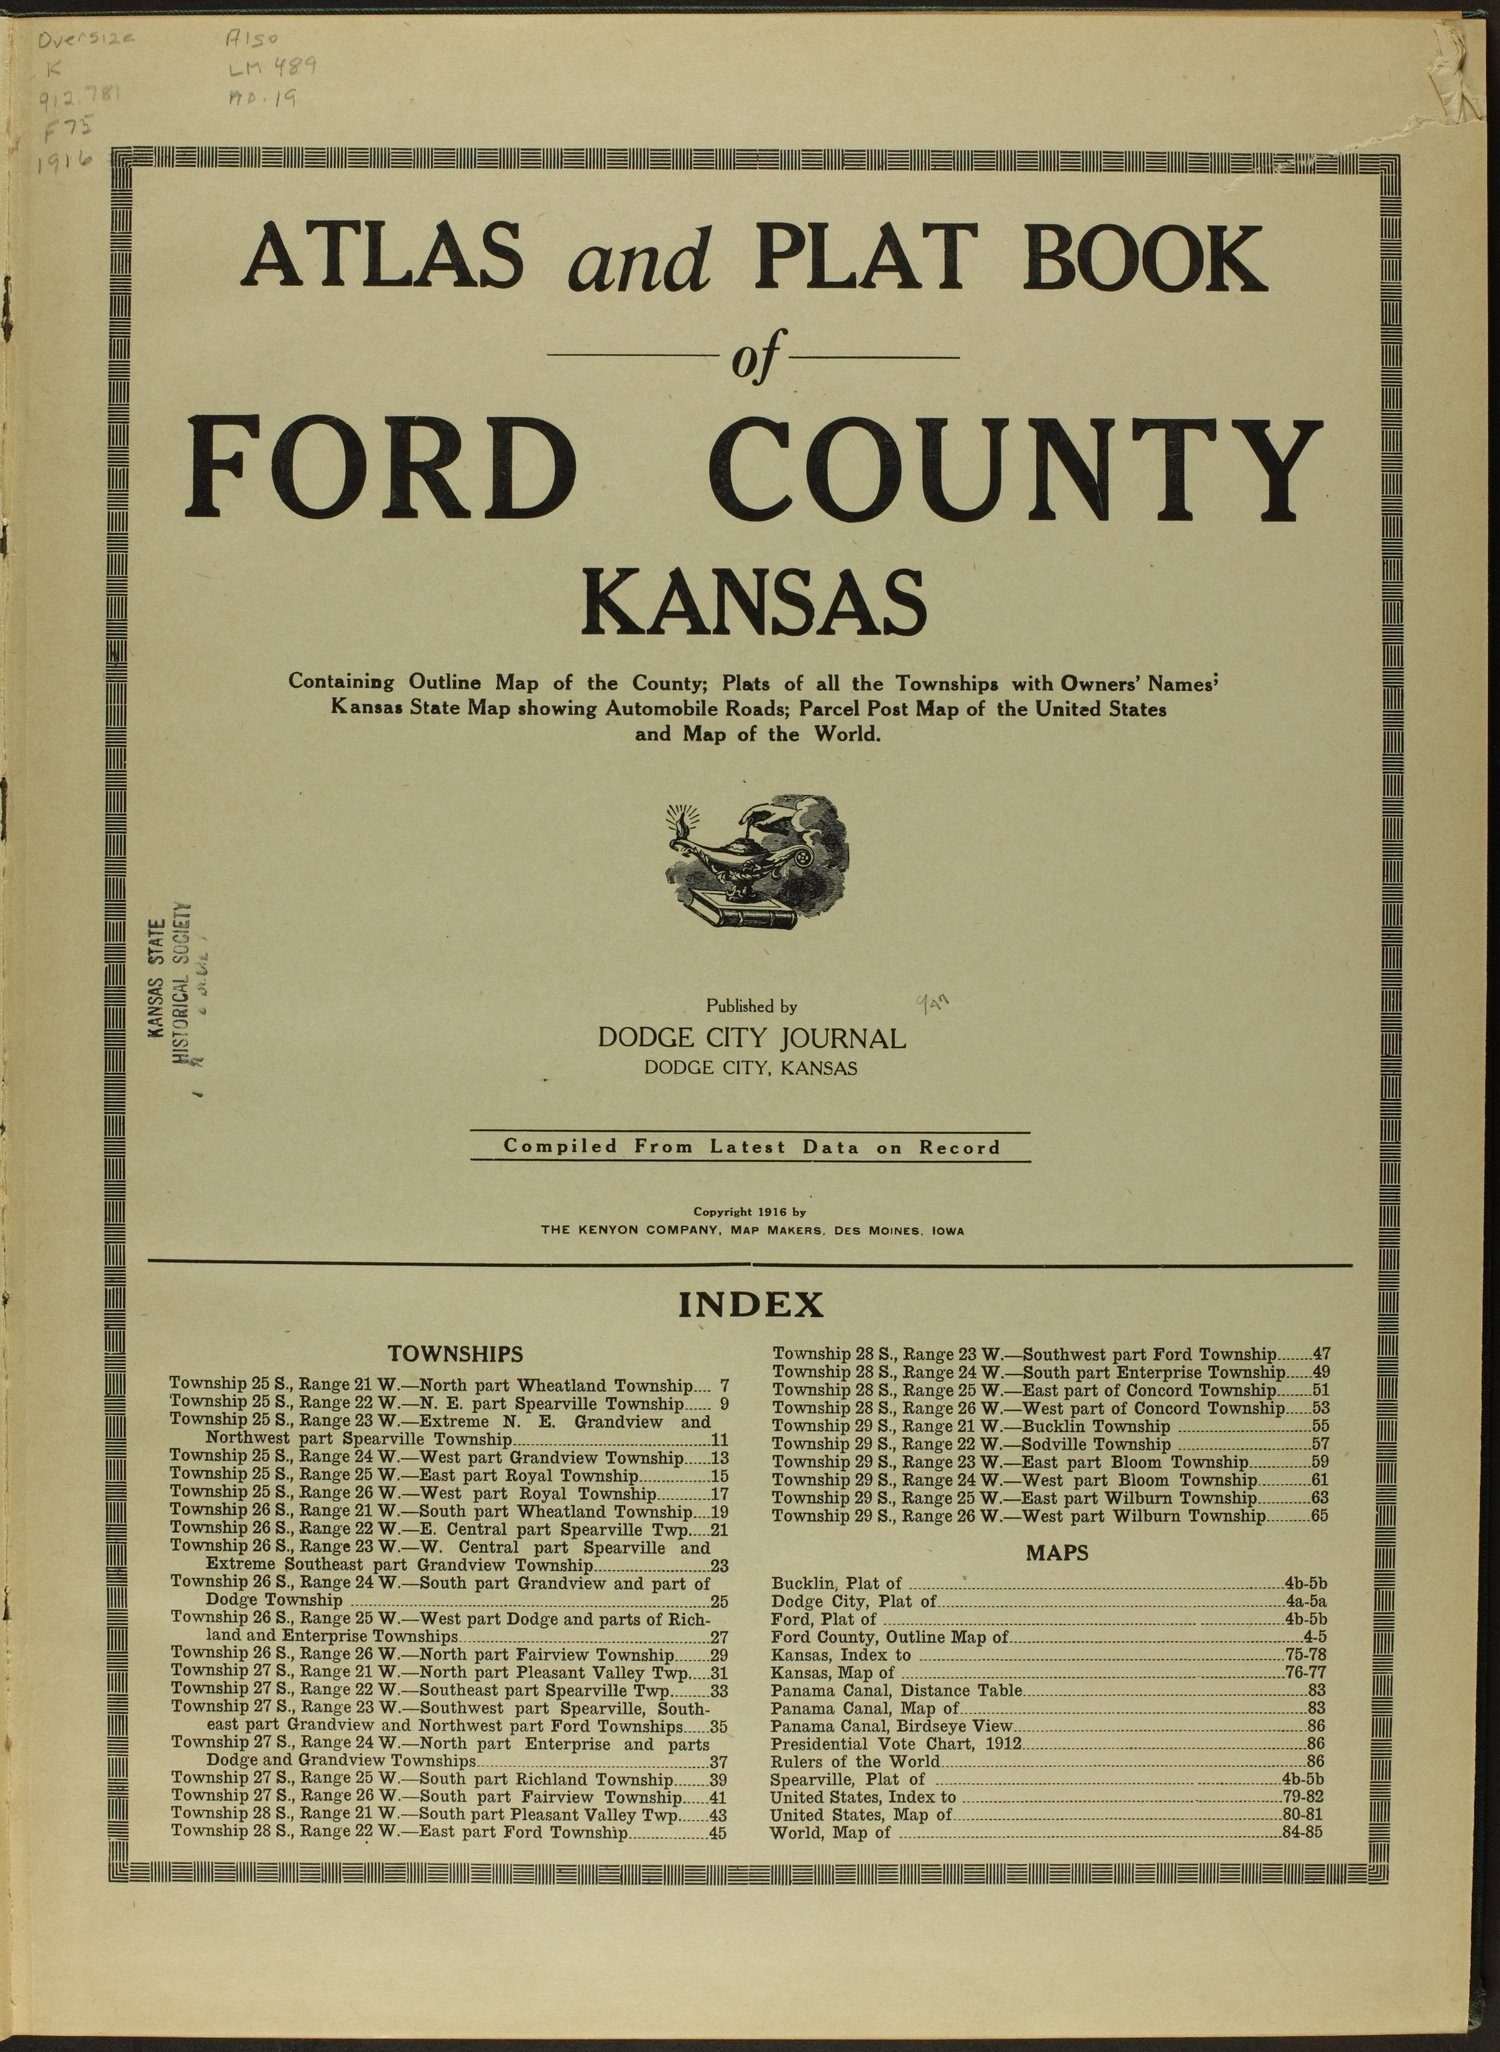 Atlas and plat book of Ford County, Kansas - Title Page